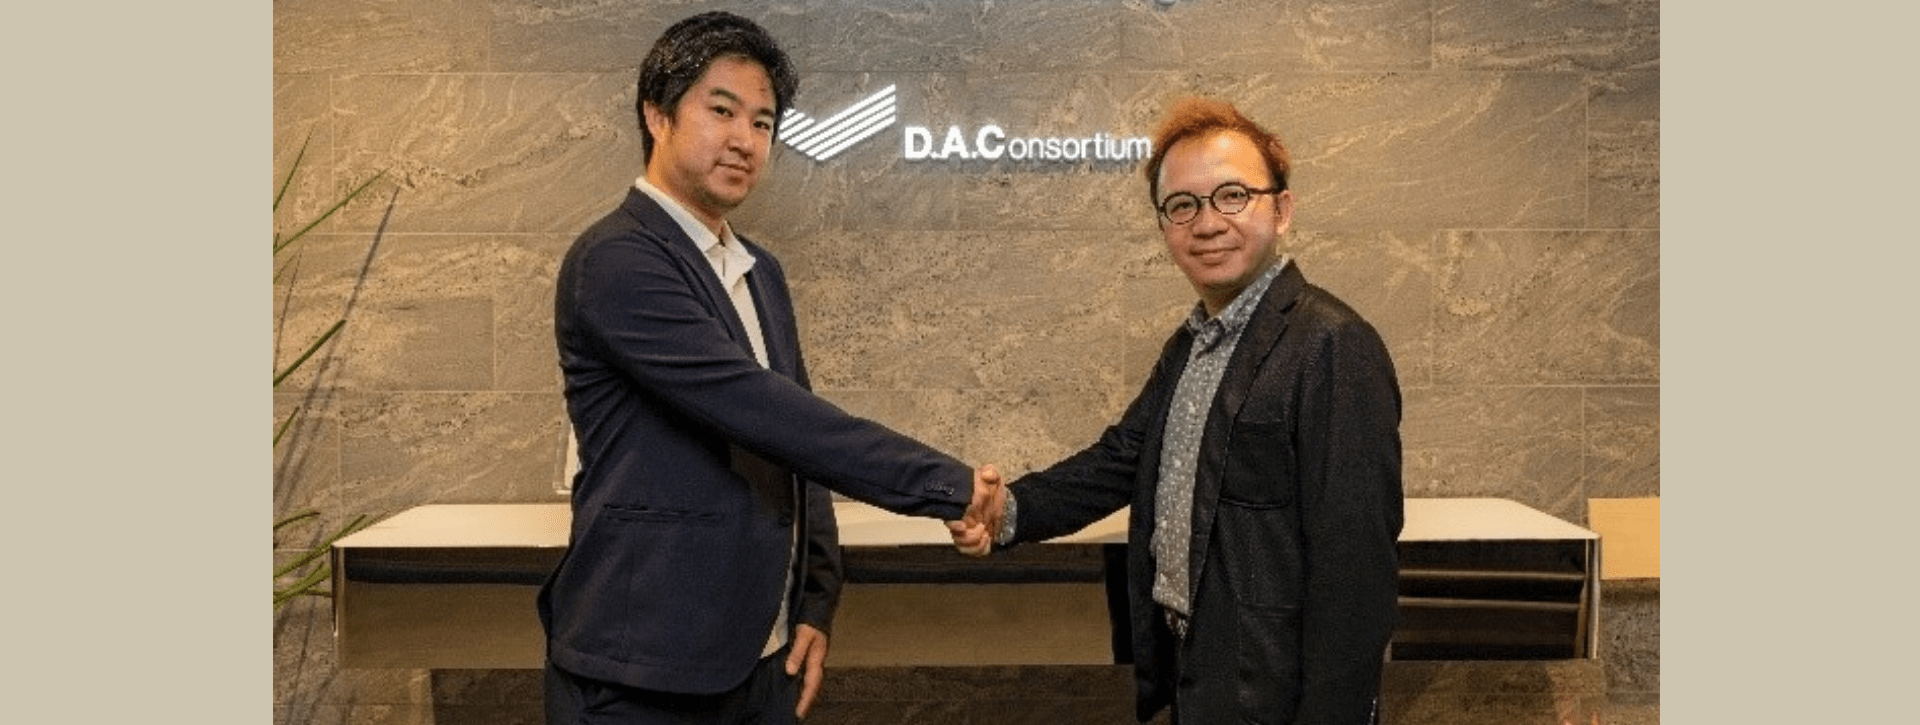 iClick X DAC Interview with ExchangeWire